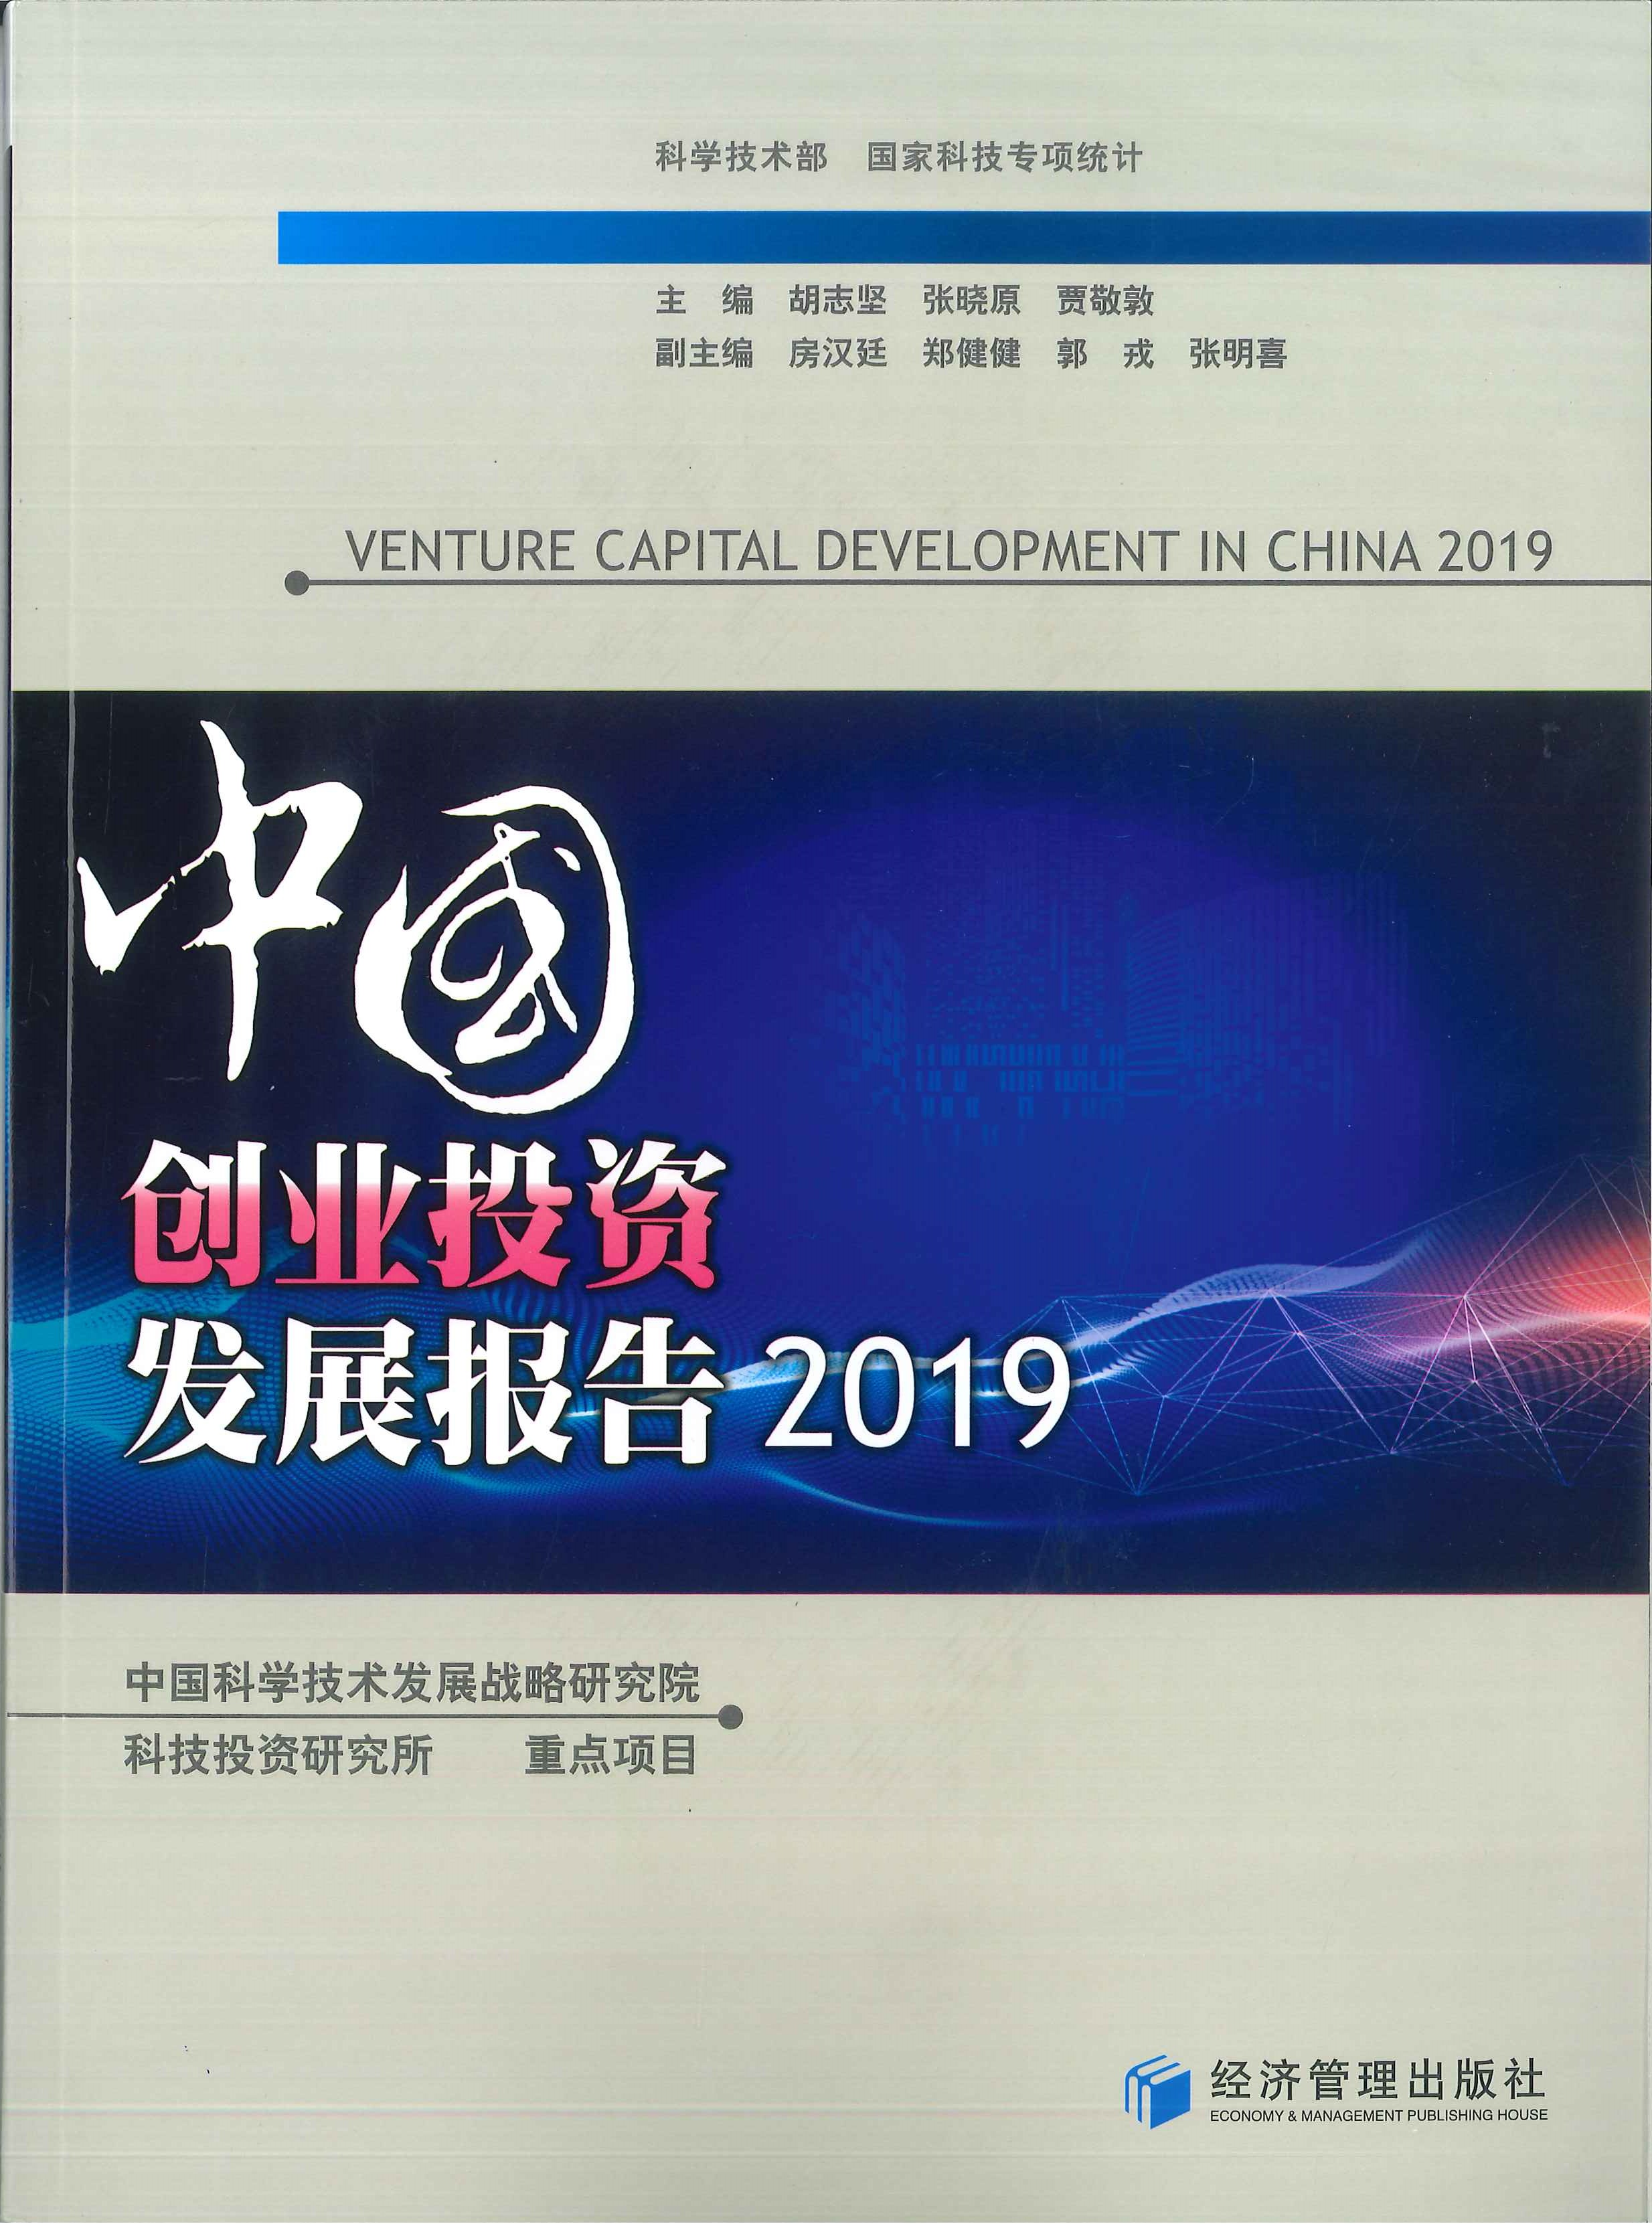 中国创业投资发展报告=Venture capital development in China